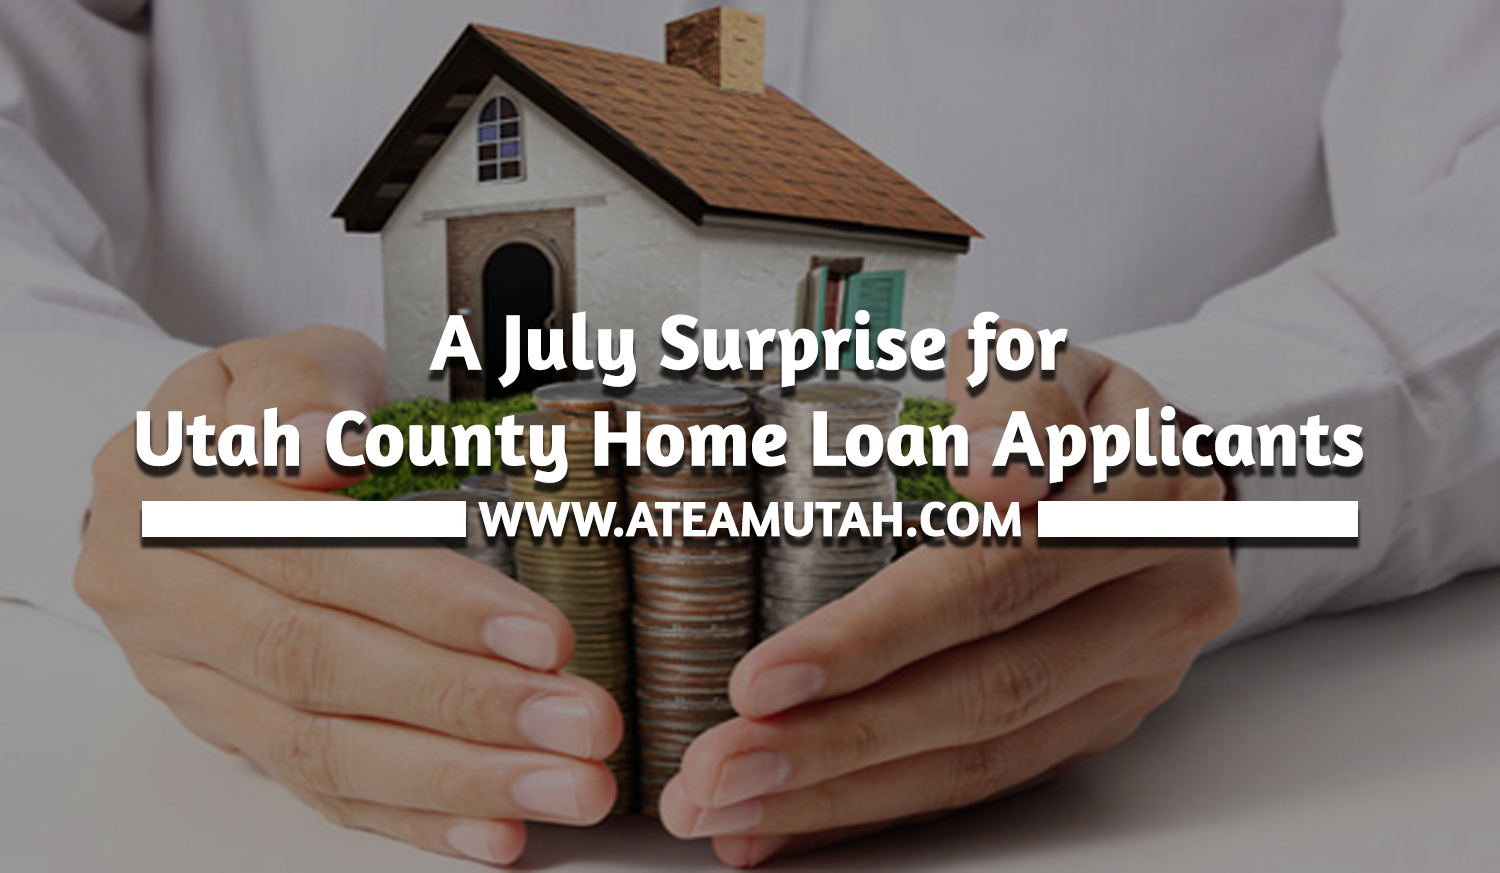 A July Surprise for Utah County Home Loan Applicants